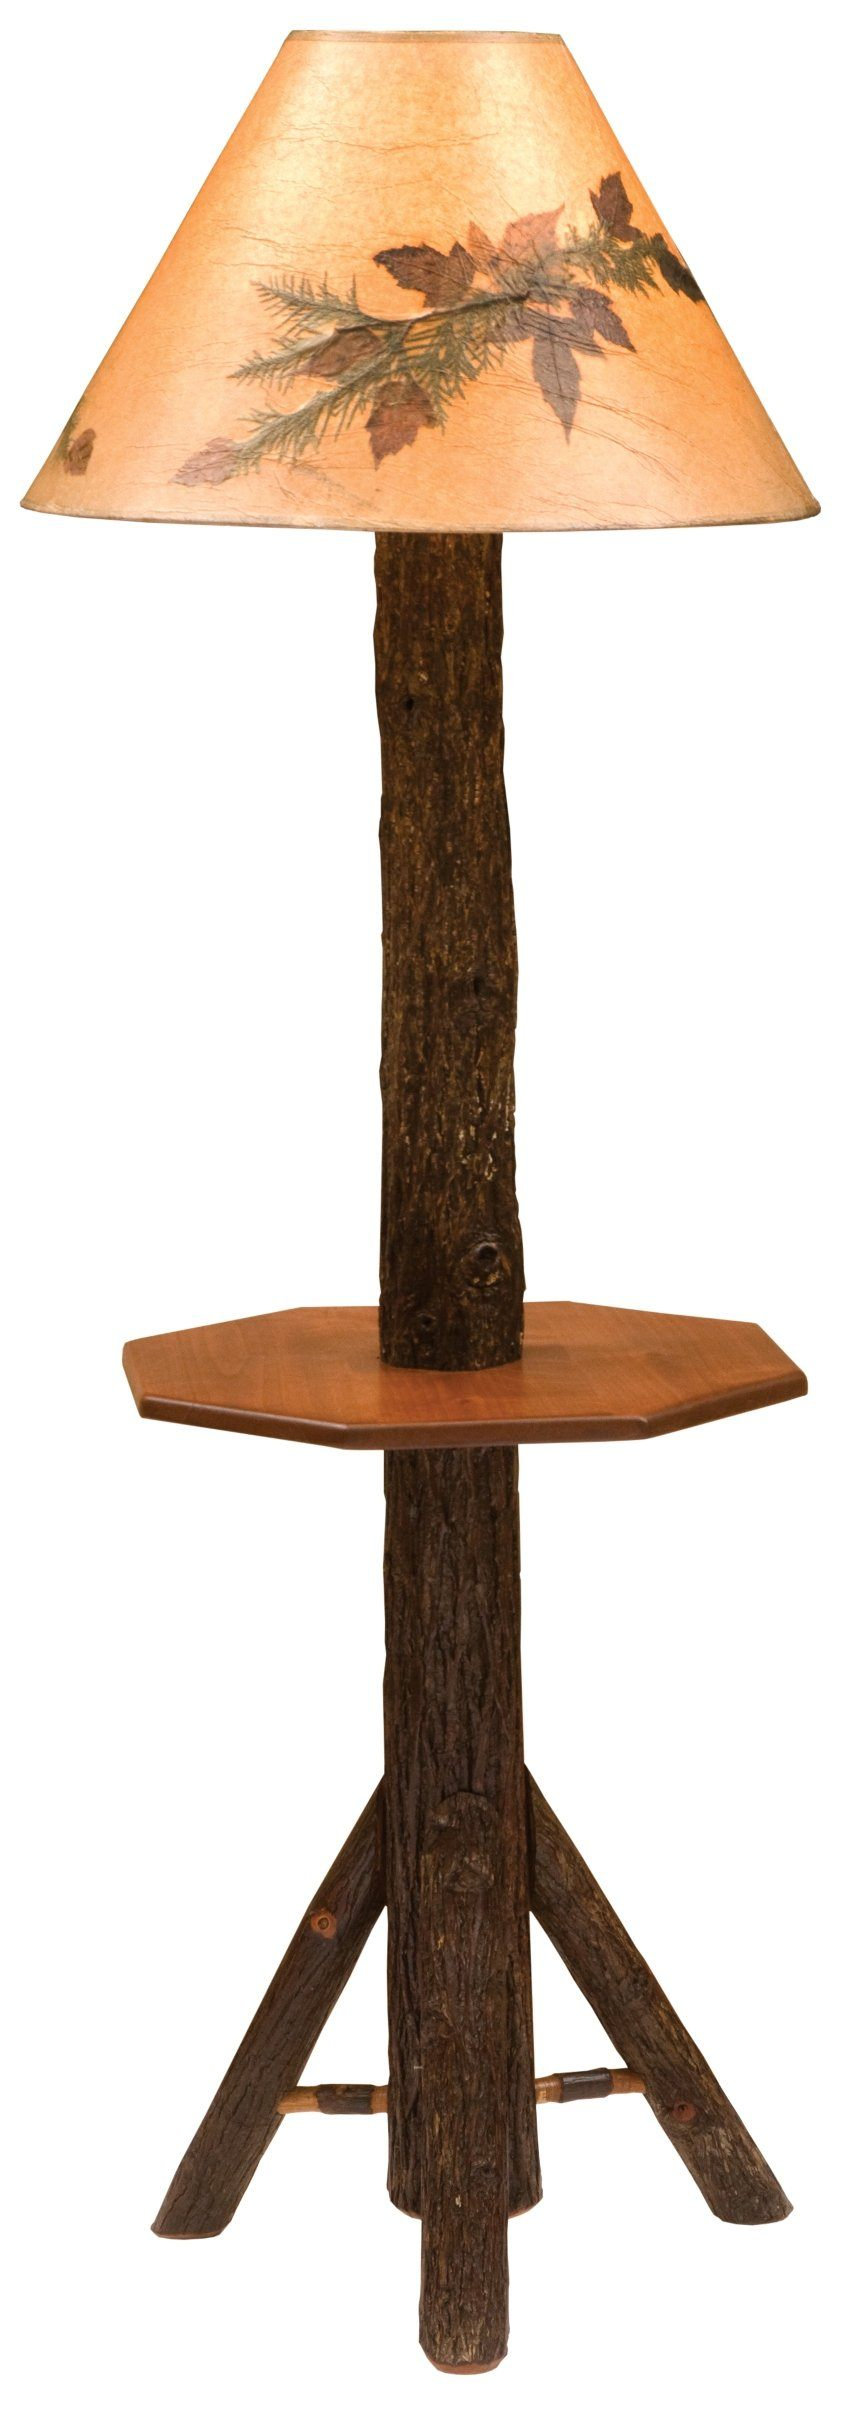 Hickory Log Floor Lamp with Shelf (without shade) - Rustic Deco Incorporated